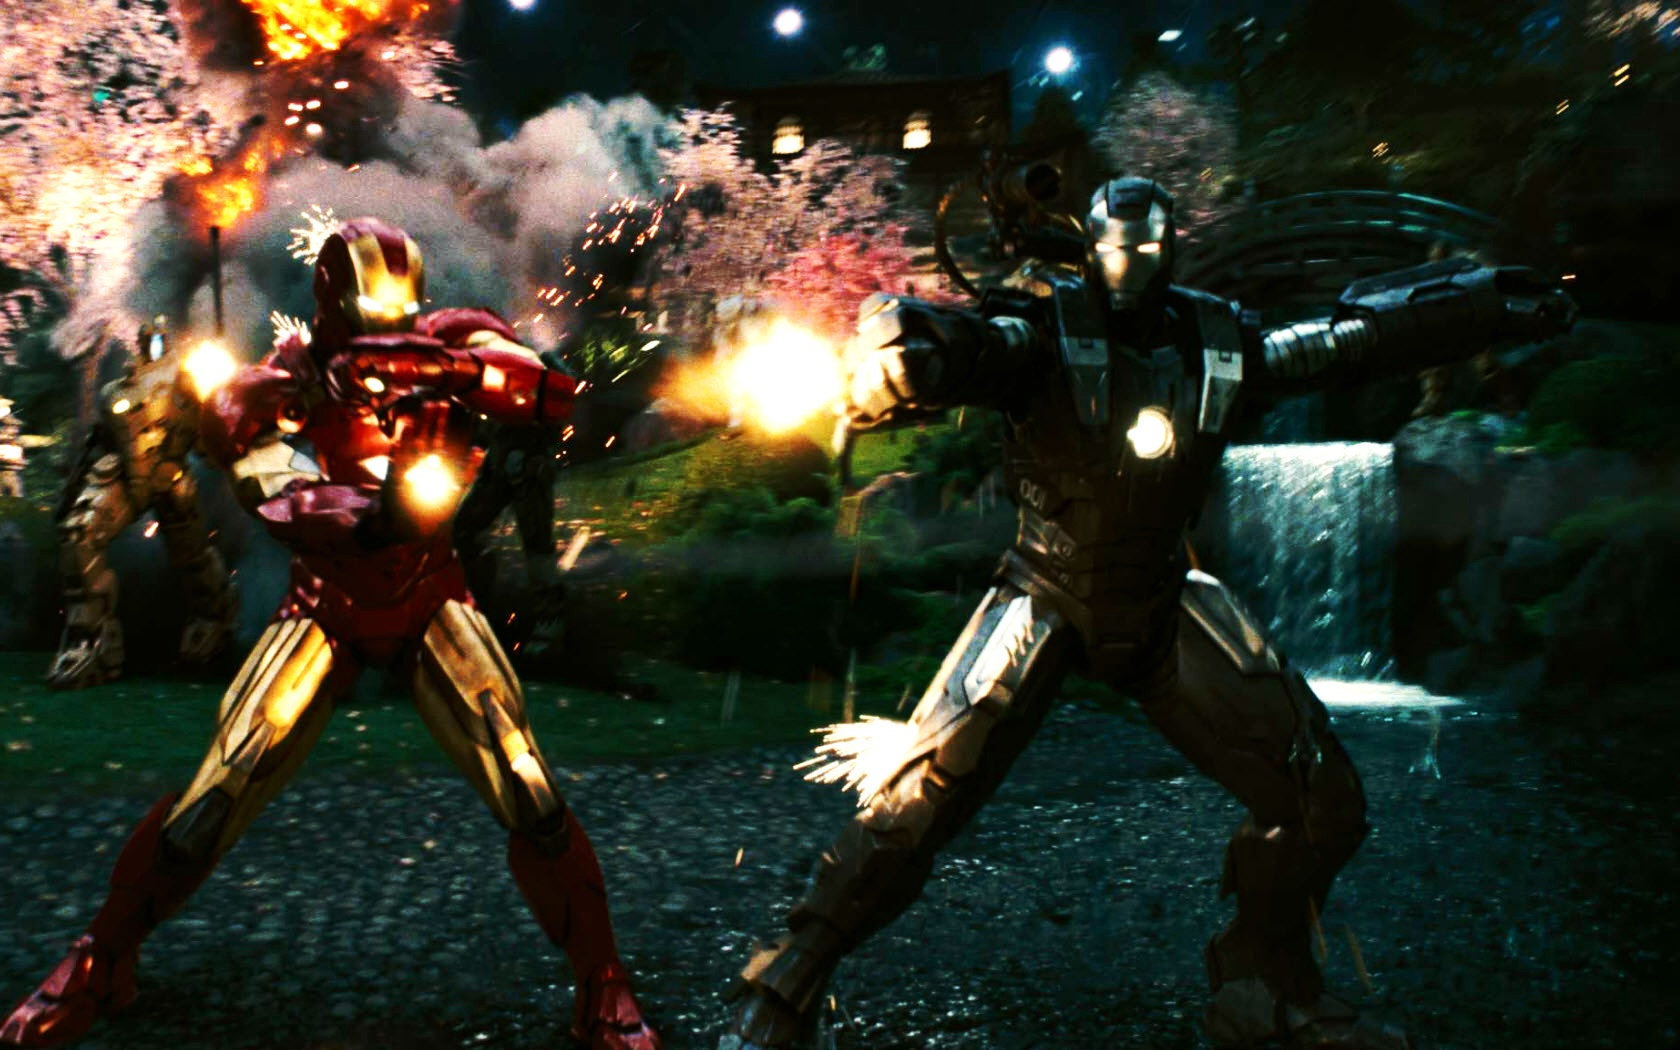 Iron Man 2 Last Scene Wallpapers HD Wallpapers 1680x1050